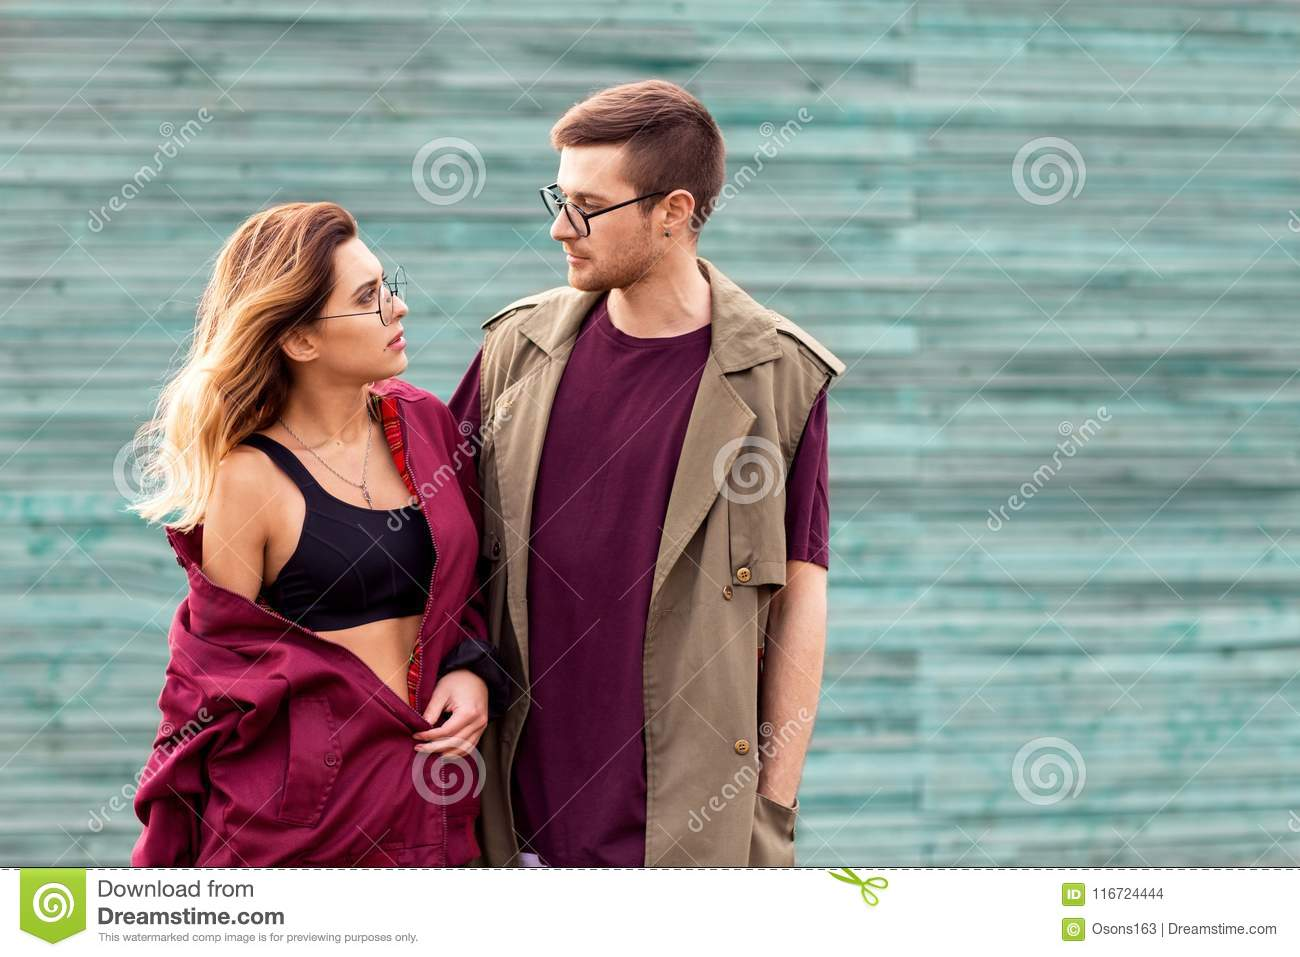 abf815da4ca Fashion Couple In Their Glasses With Burgundy Clothes Posing On ...